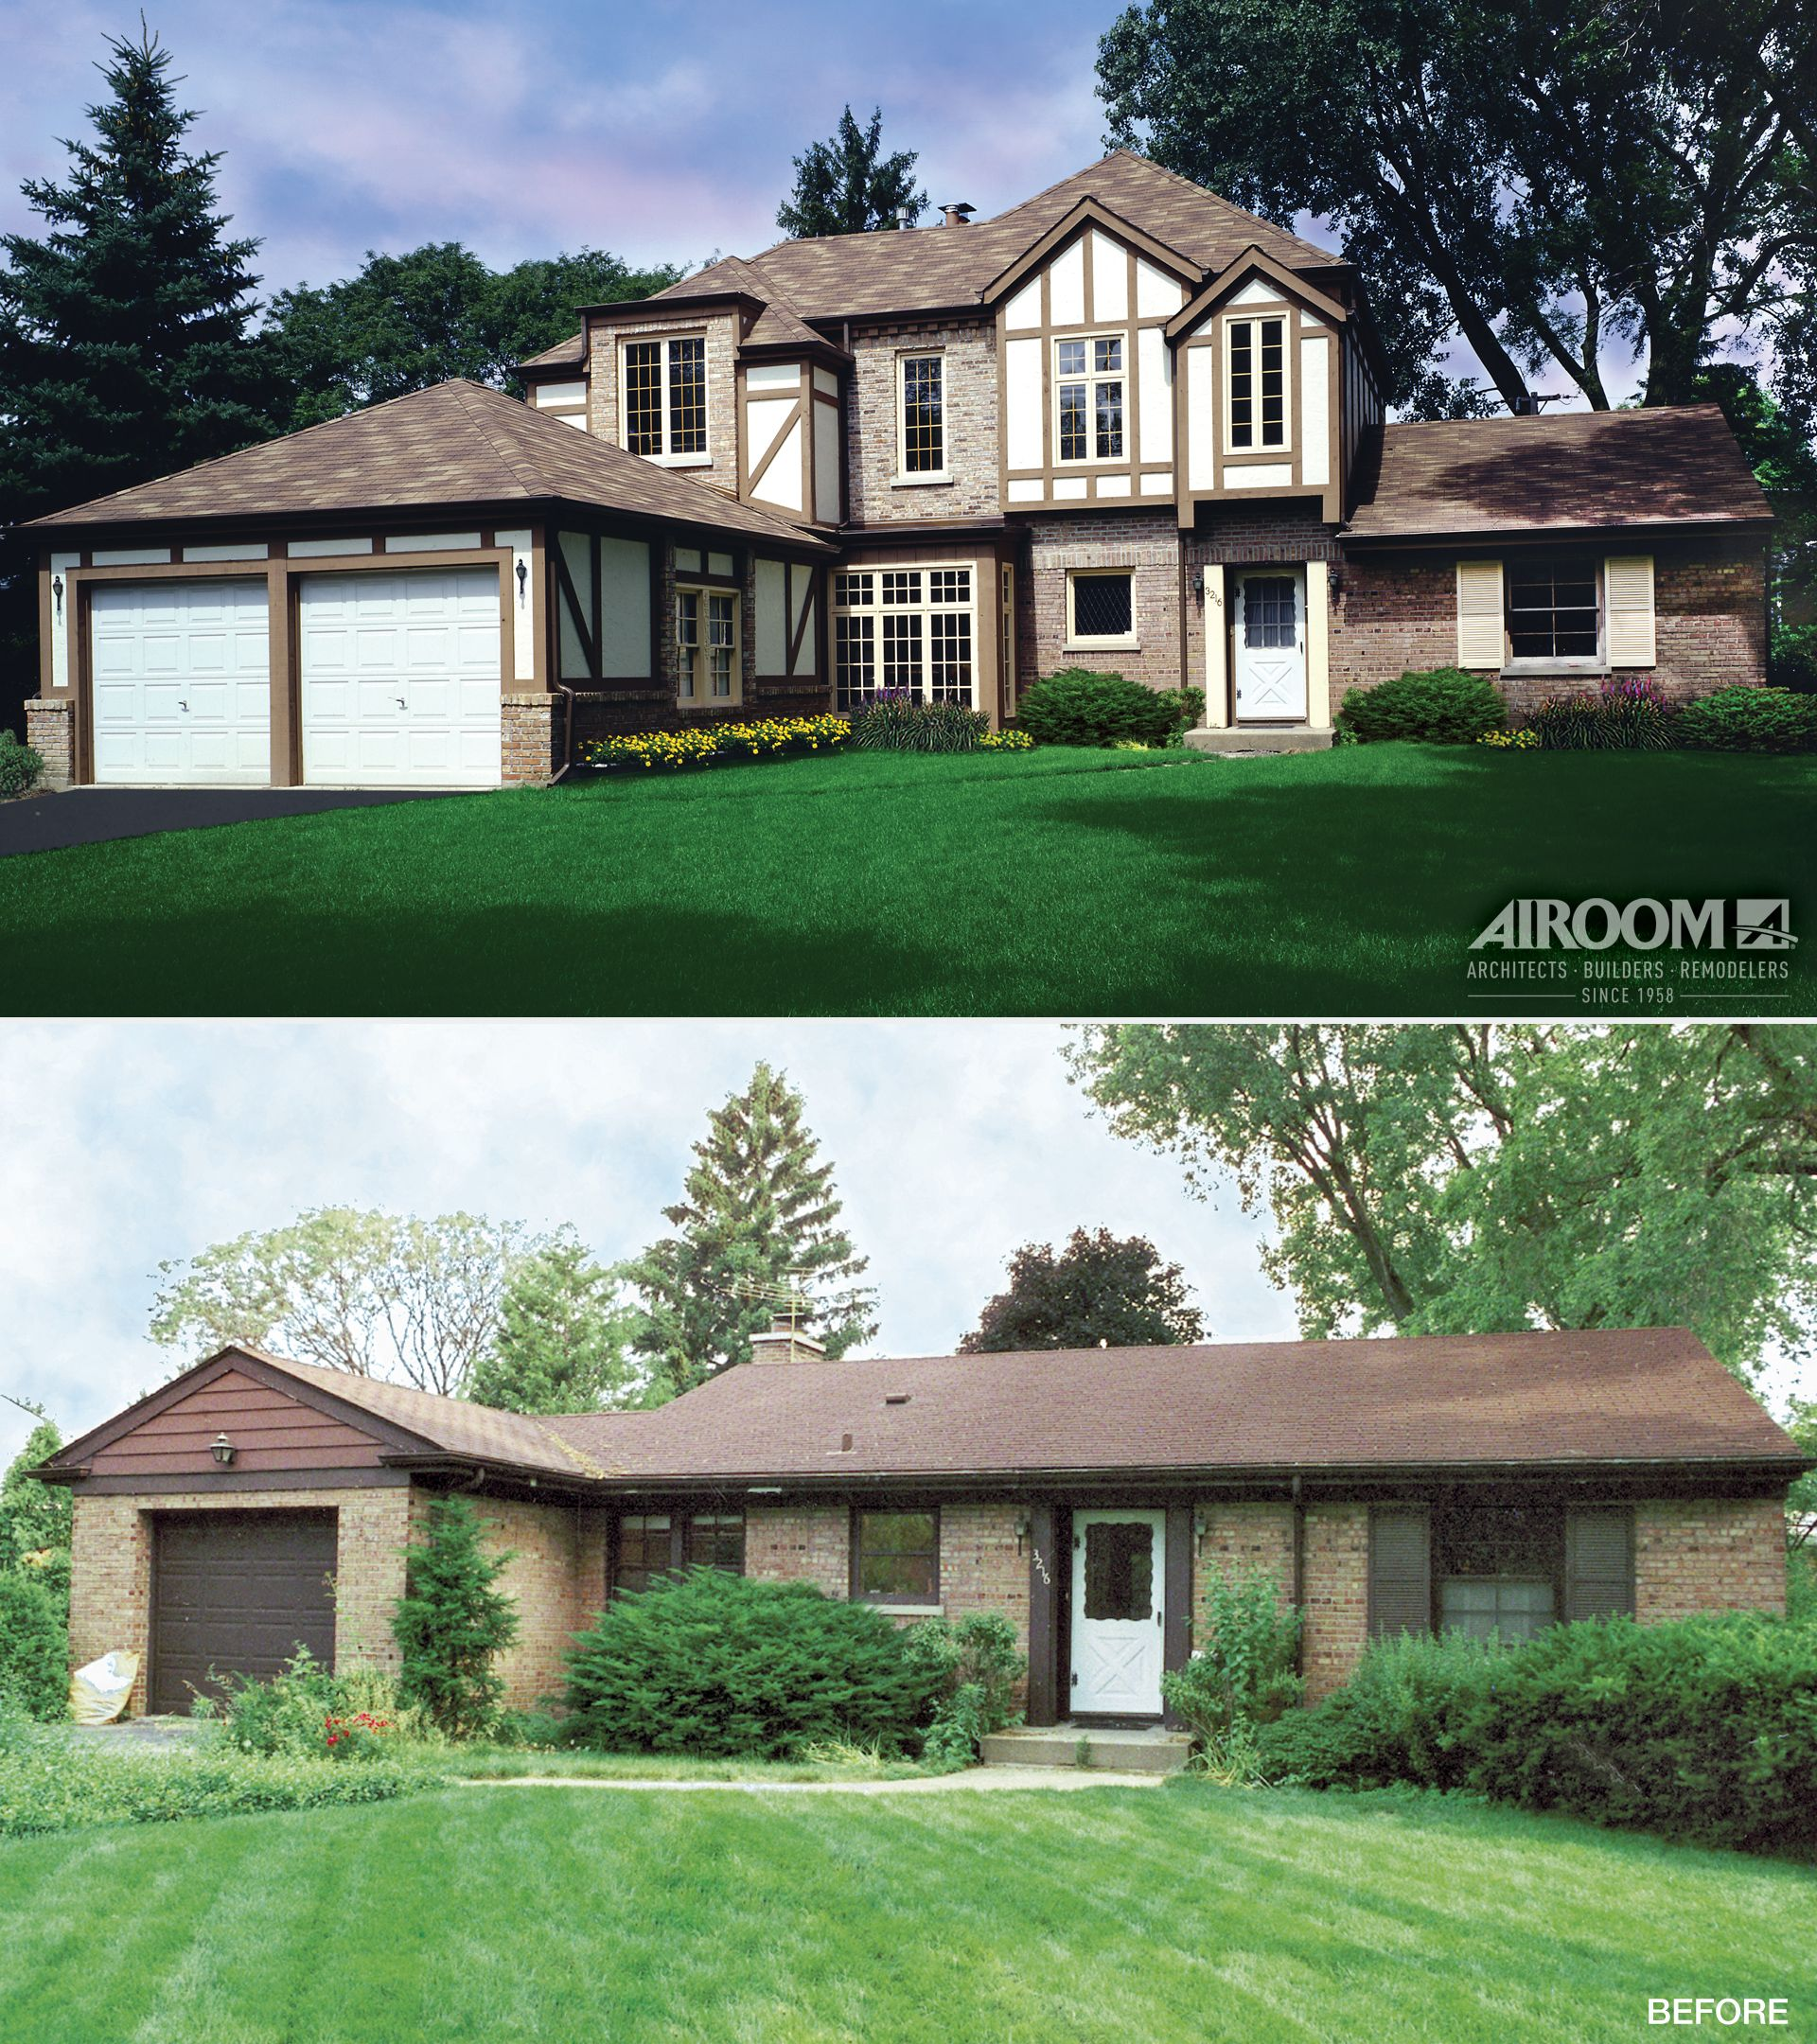 Before And After Garage Remodels: A Modest Dwelling Undergoes A Complete Metamorphosis When